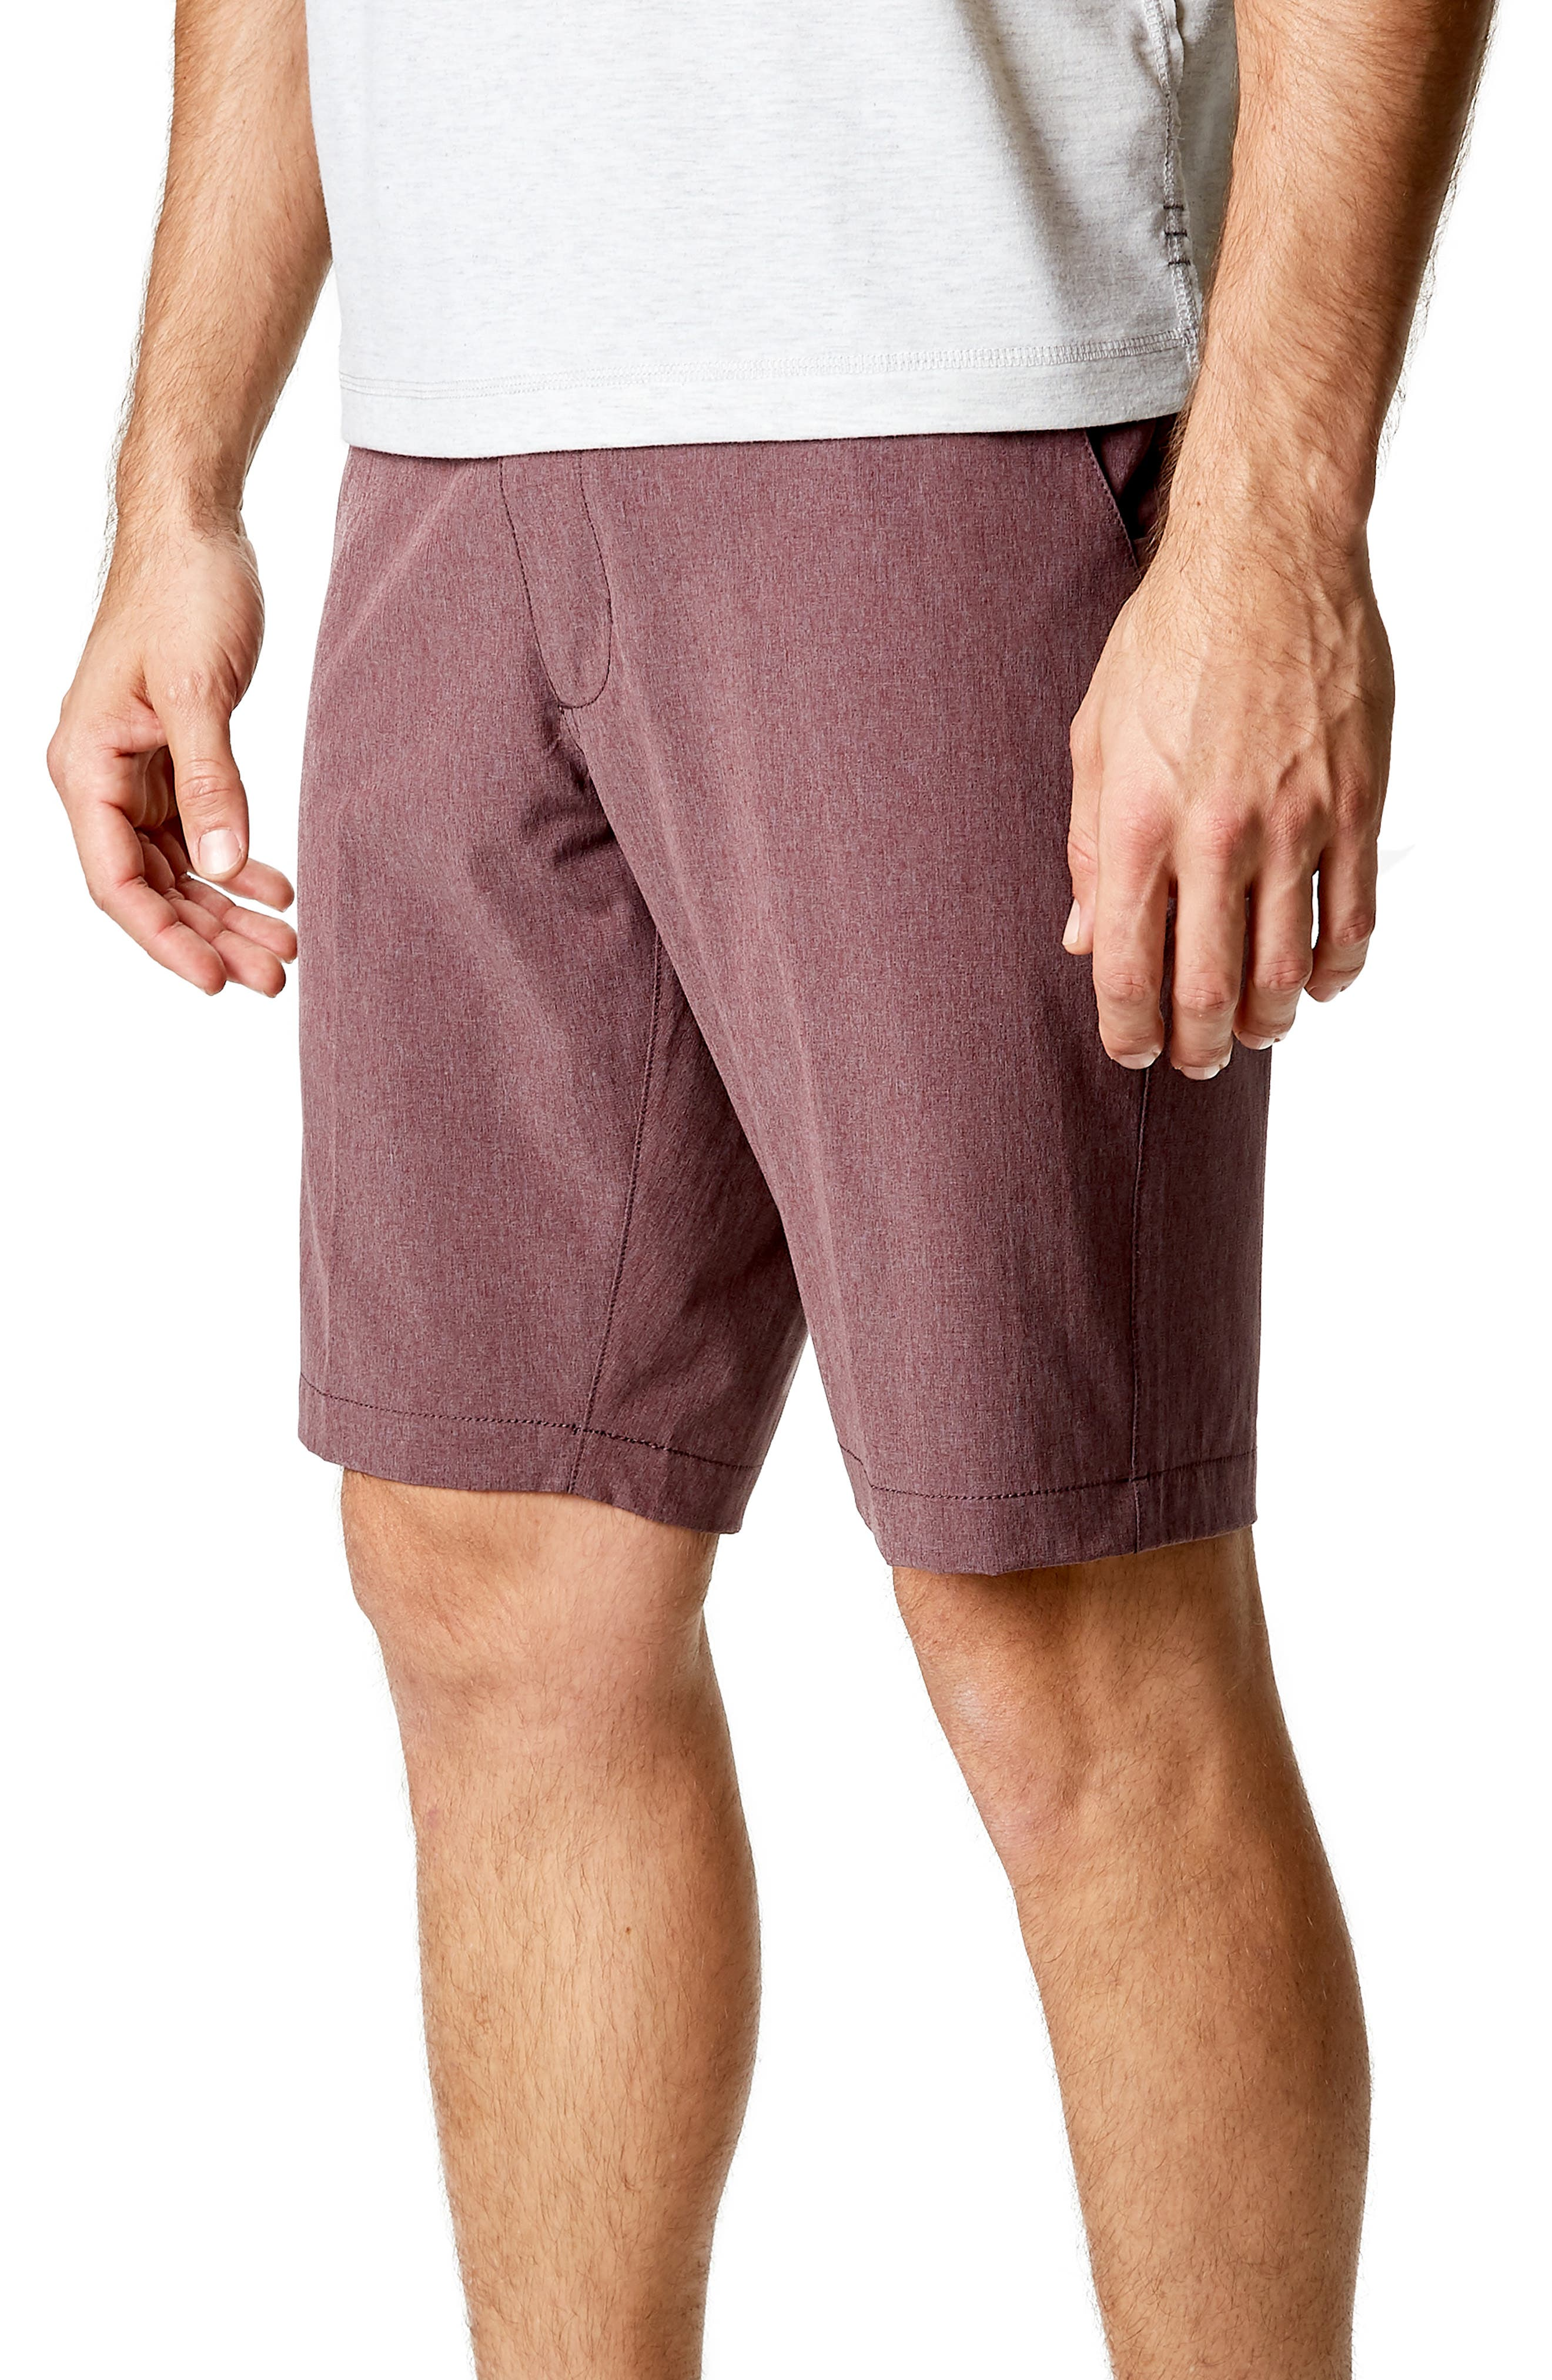 Adrenaline Stretch Shorts,                             Alternate thumbnail 3, color,                             Berry